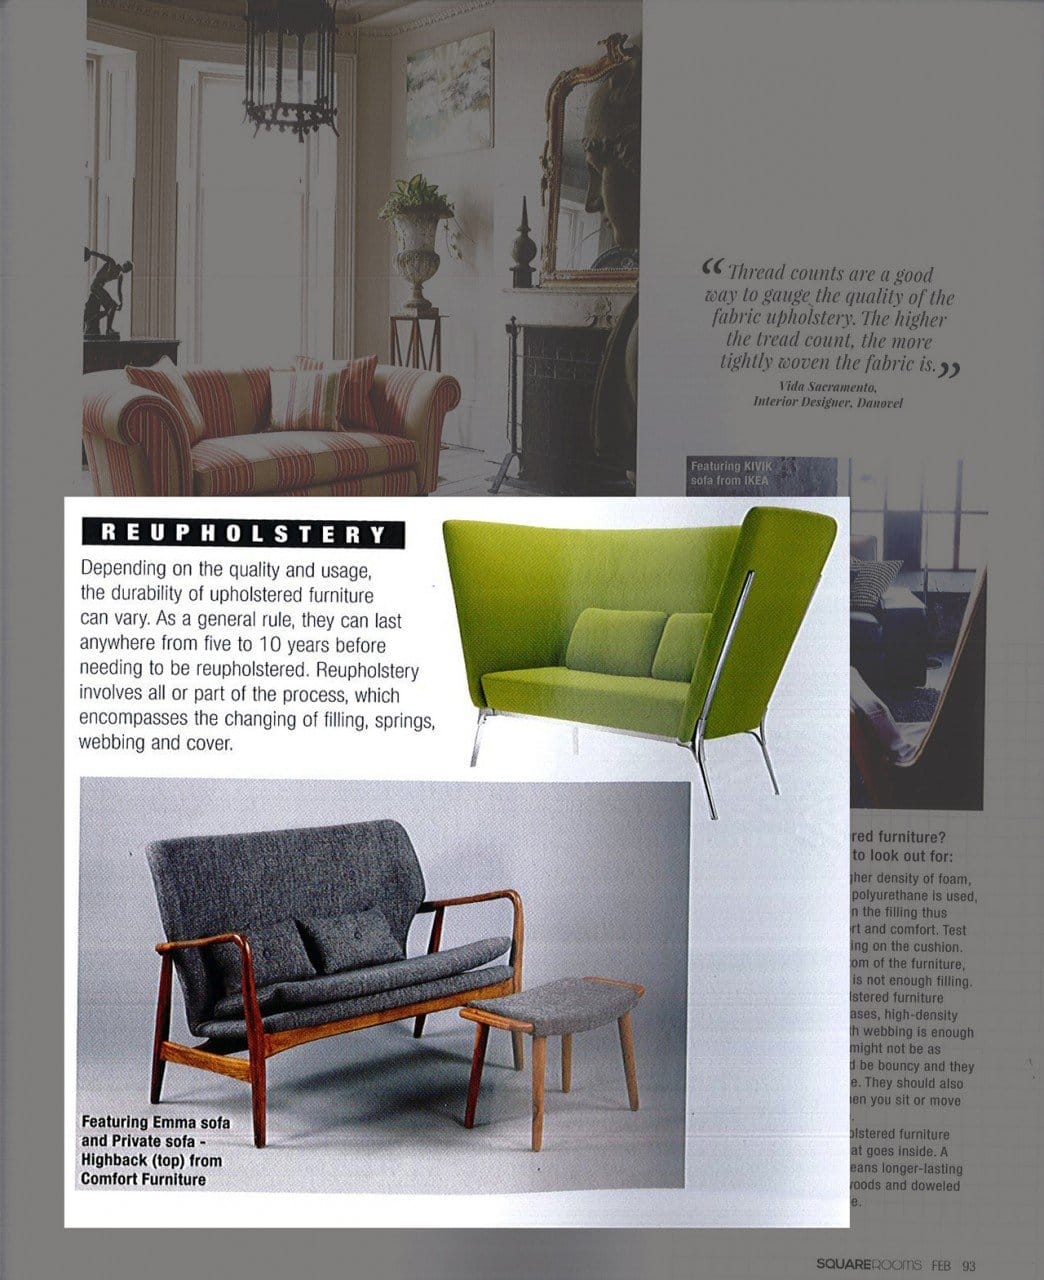 As featured on SquareRooms - February 2015 Issue<br />